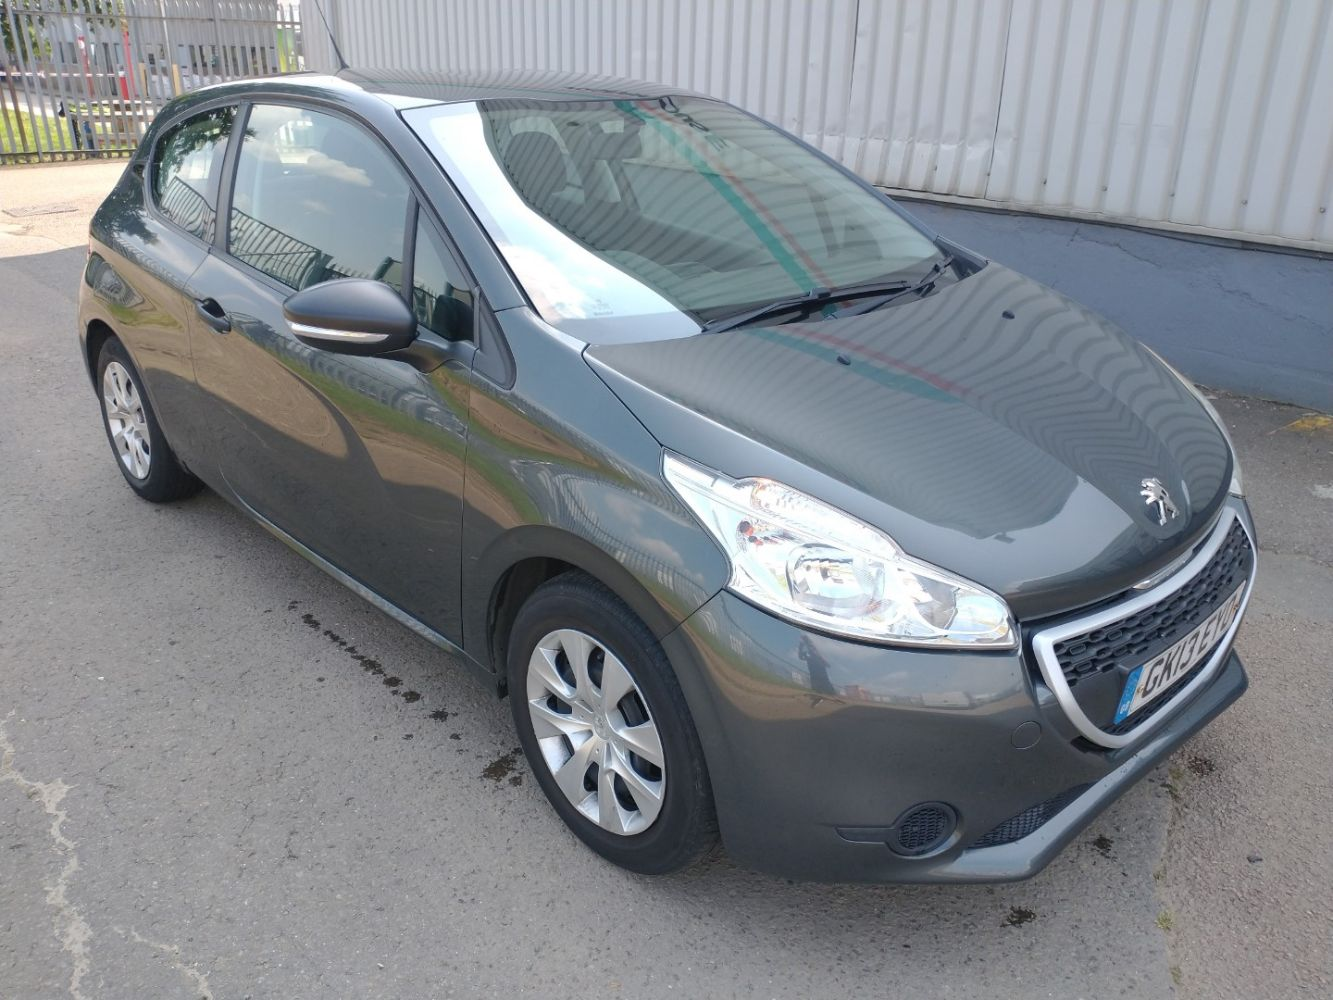 Monday 26th July: Vehicles Auction Featuring Cars And Vans